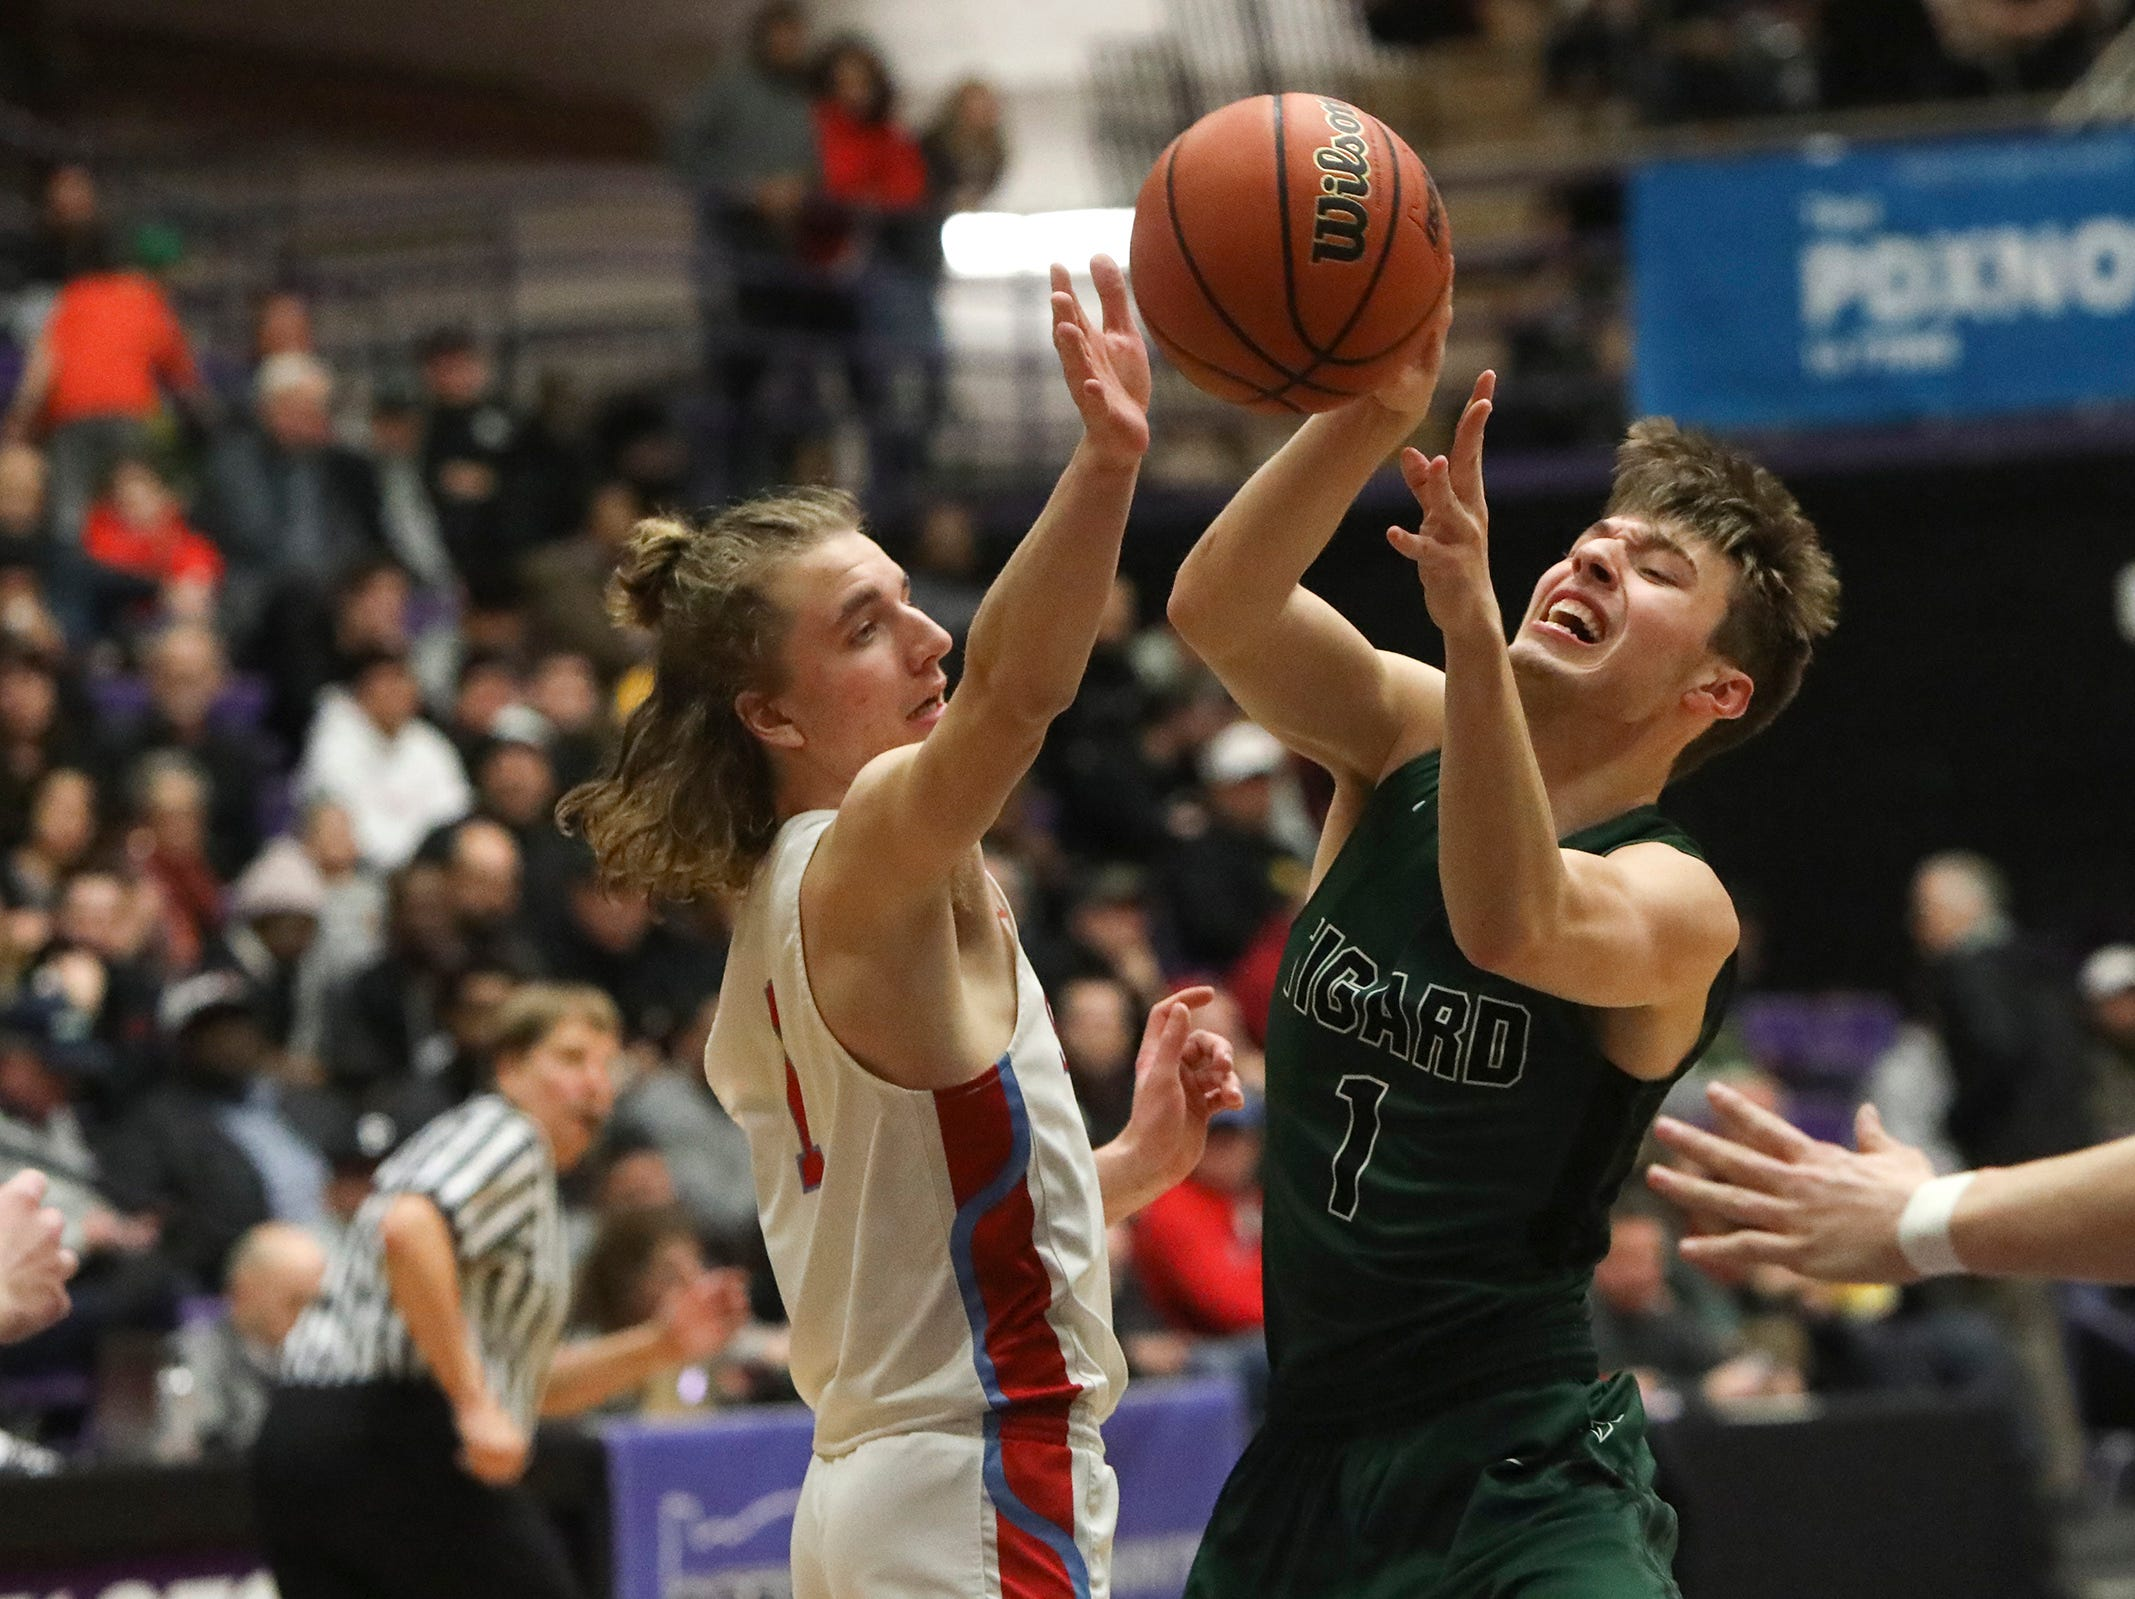 Tigard's Diego Lopez (1) passes over South Salem's Eric Lungu (1) during the OSAA 6A boys basketball state tournament quarterfinal on Wednesday, March 6 at Chiles Center.